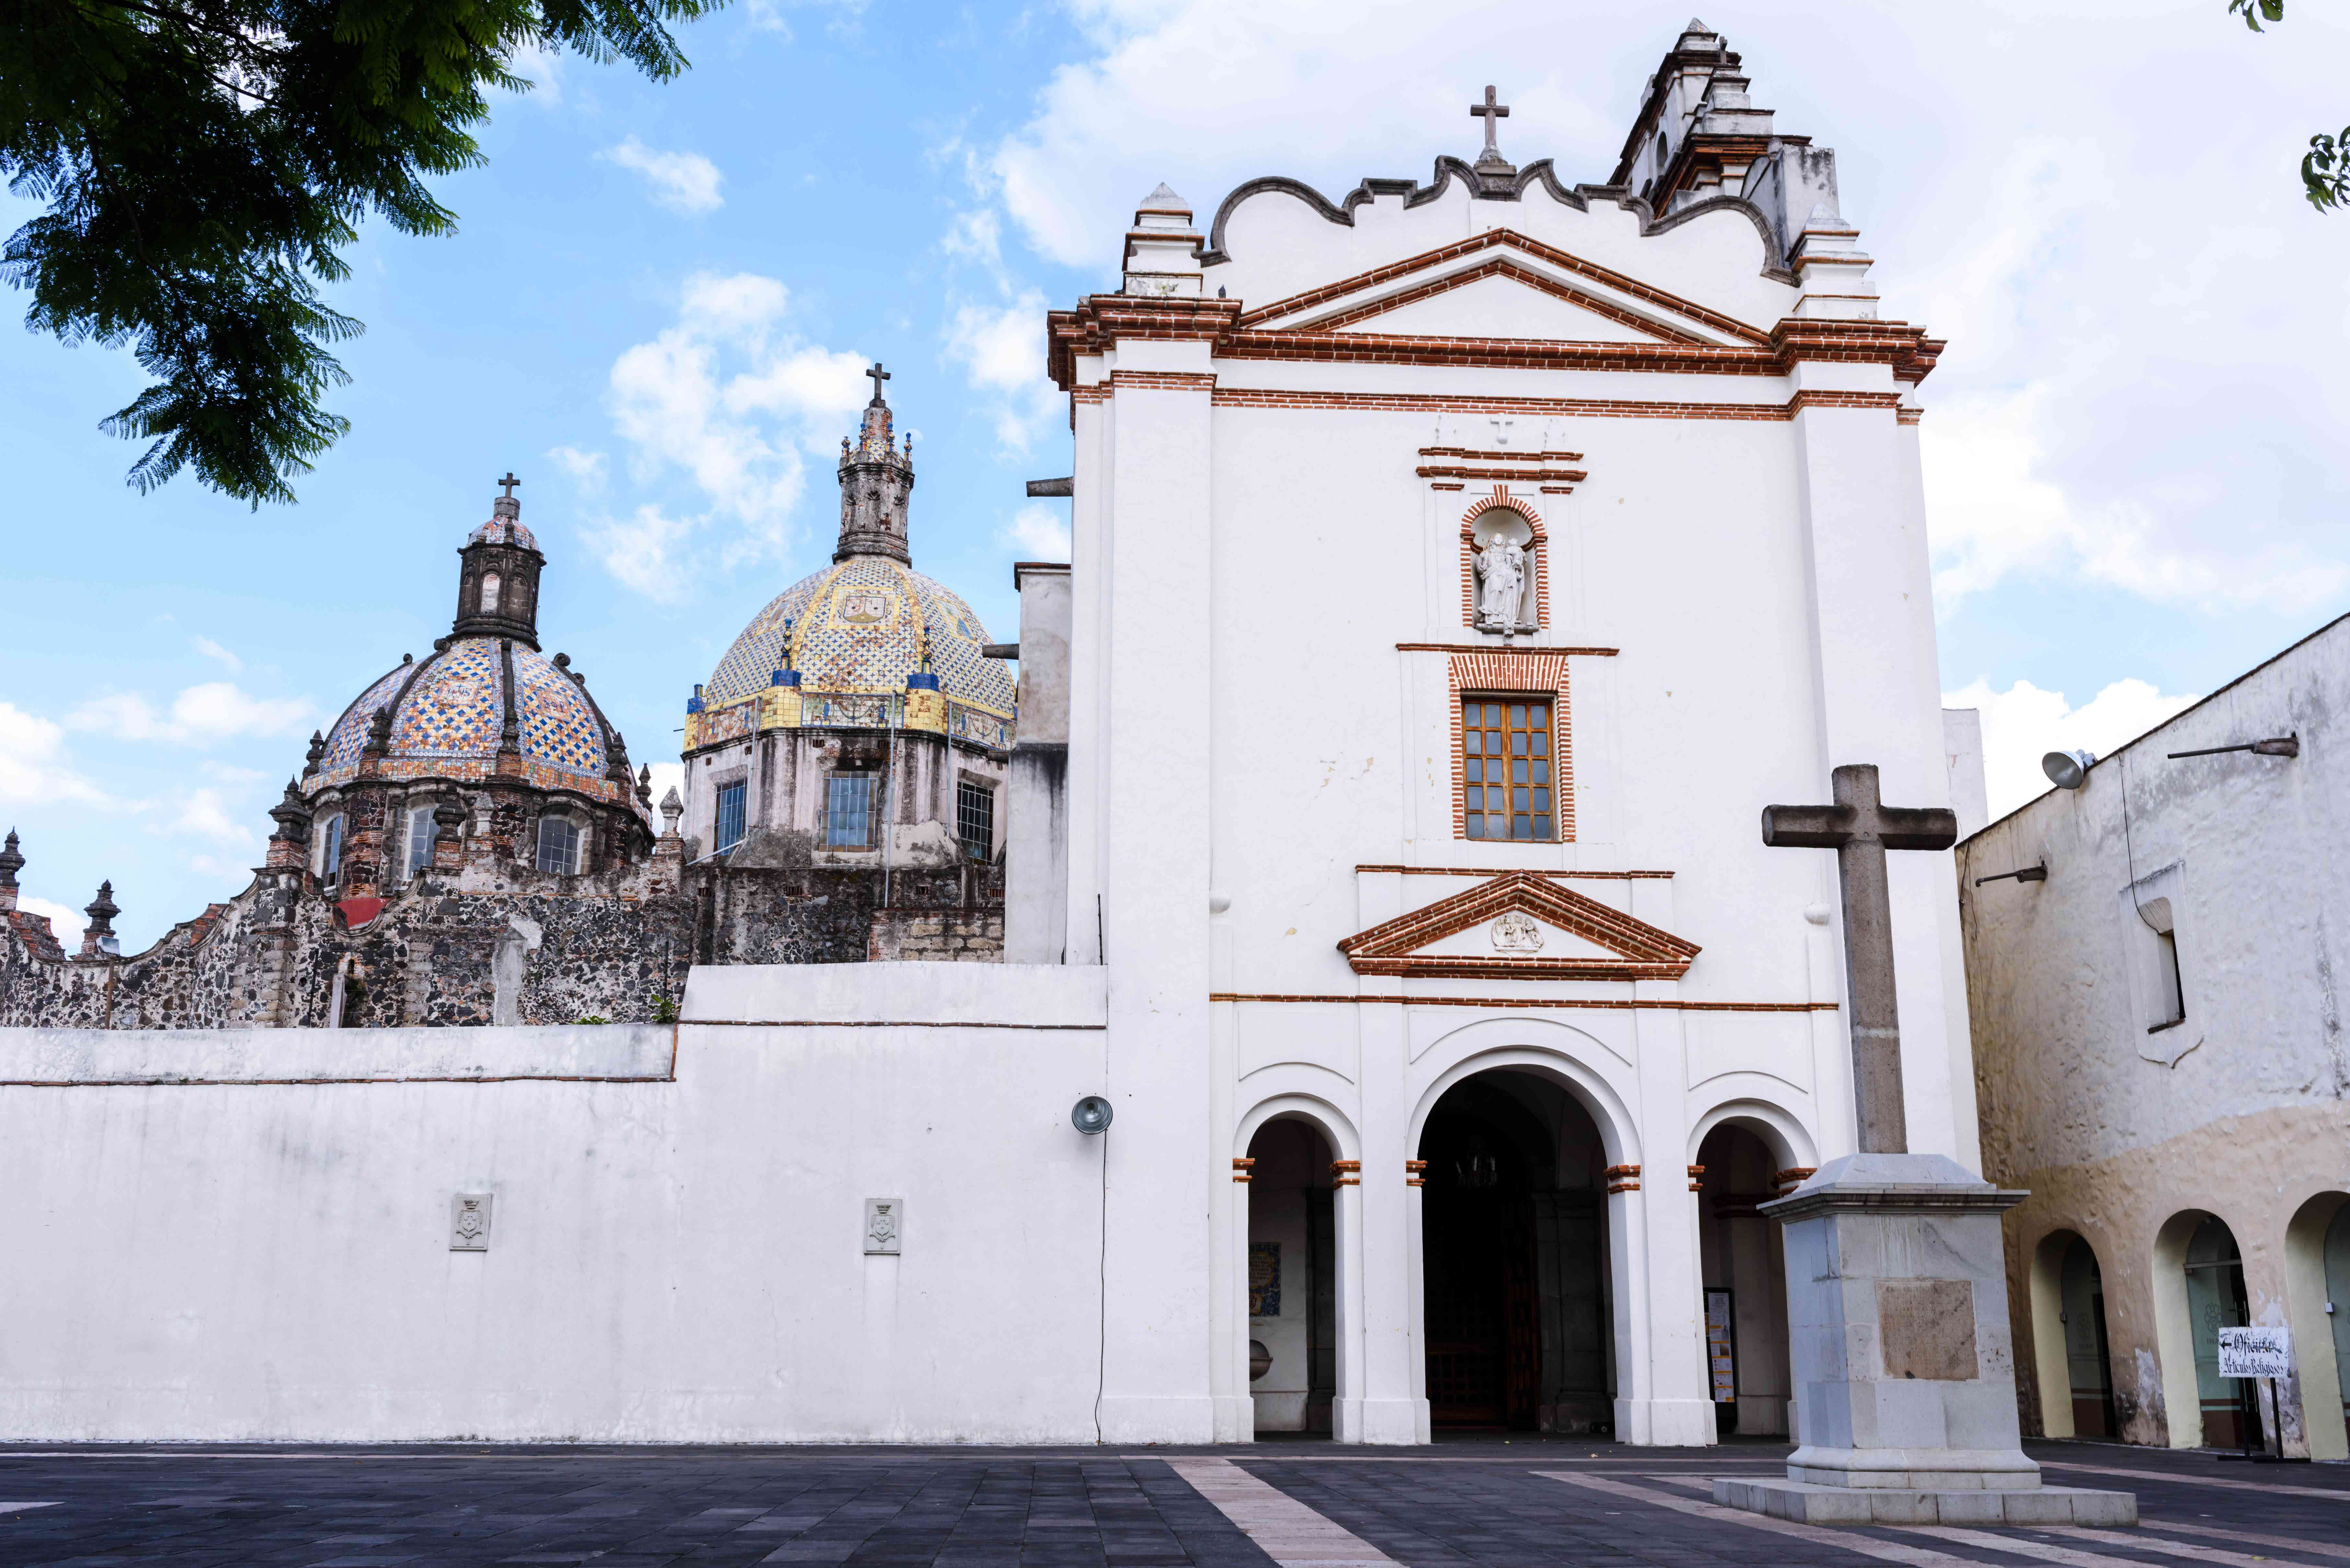 A colorful cathedral in San Angel